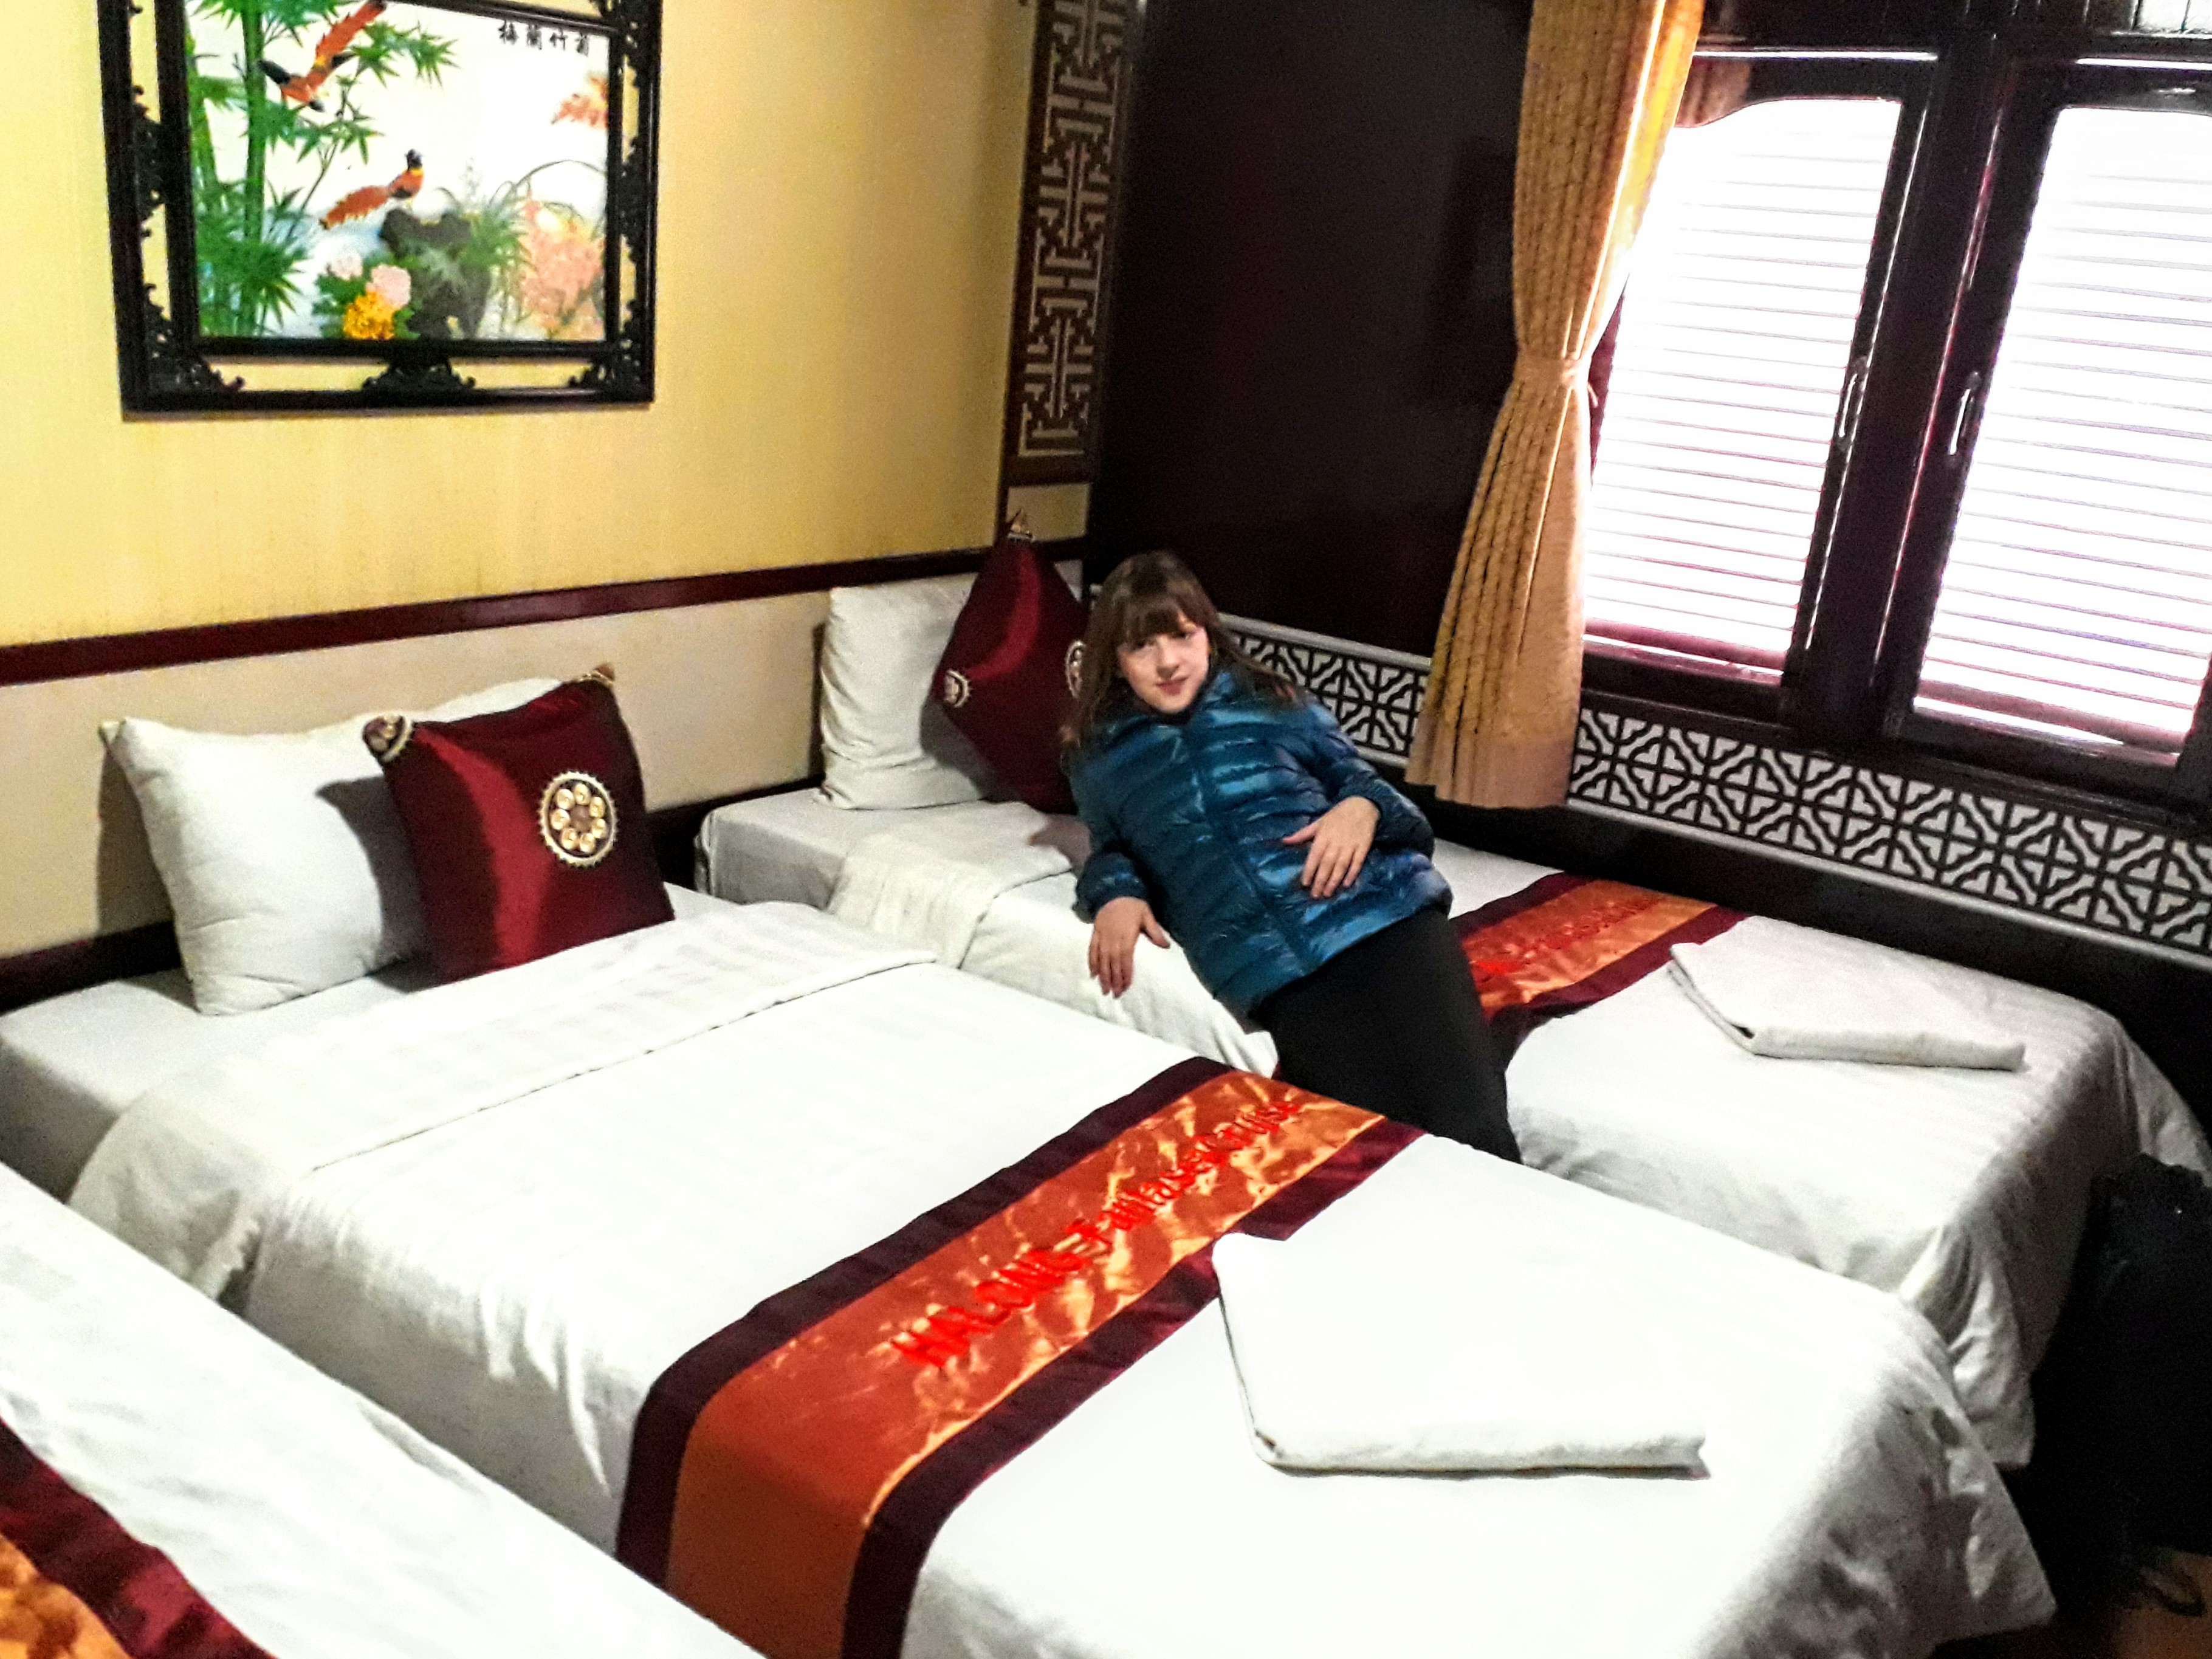 Halong Bay - Our Room On The Boat